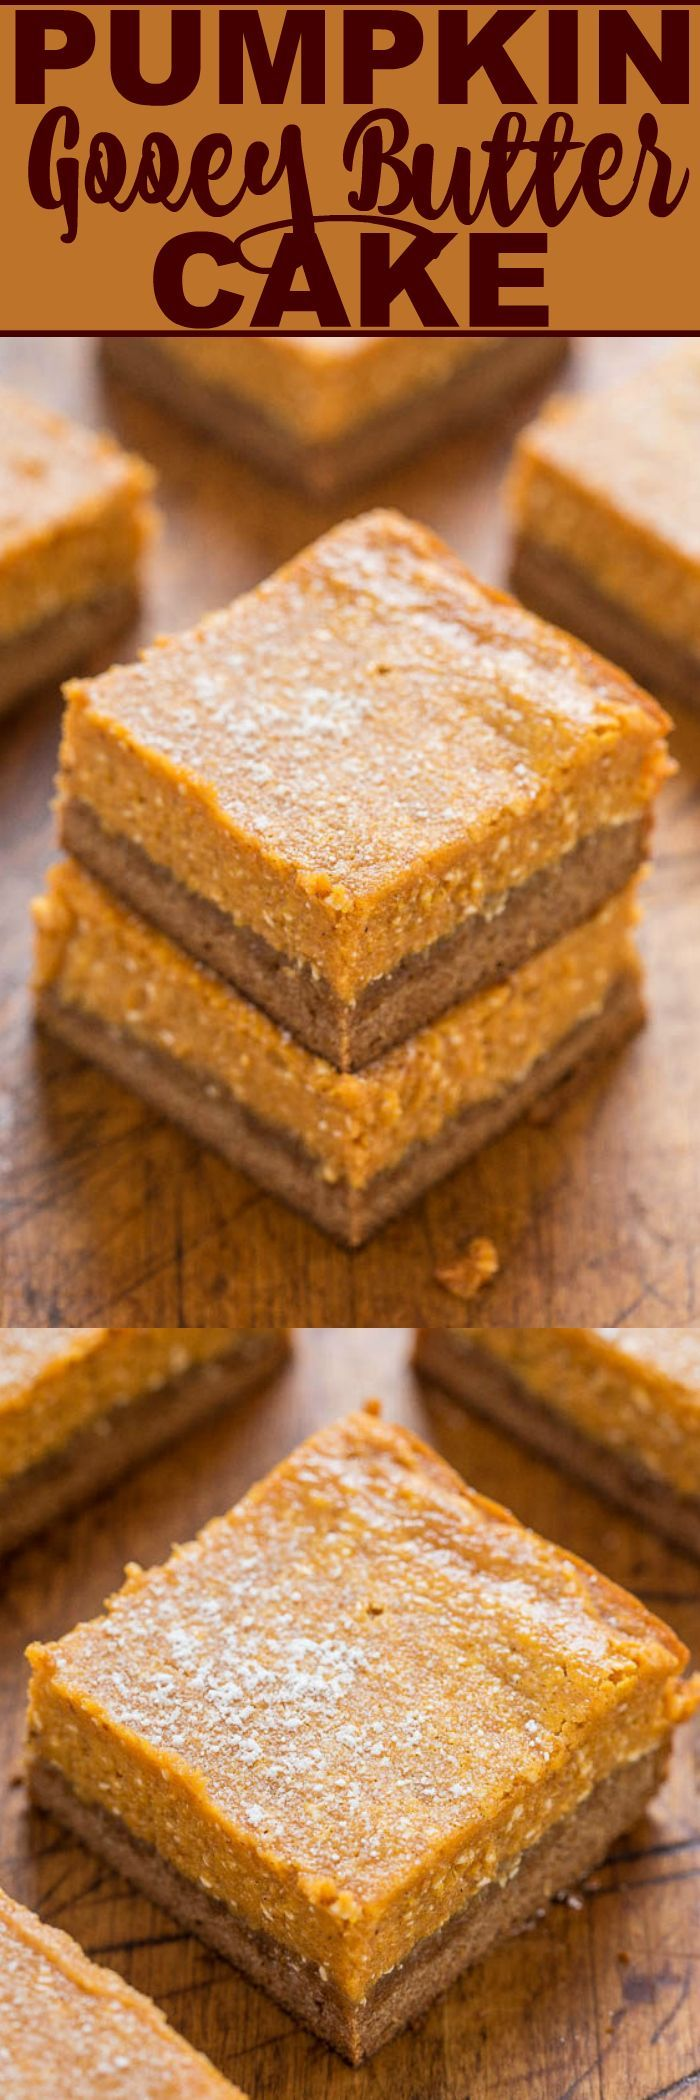 Pumpkin Gooey Butter Cake - Like a gooier, richer version of pumpkin pie with a spice cake crust!! Butter + cream cheese = lives up to its GOOEY name! Make it for Thanksgiving instead of pumpkin pie!!